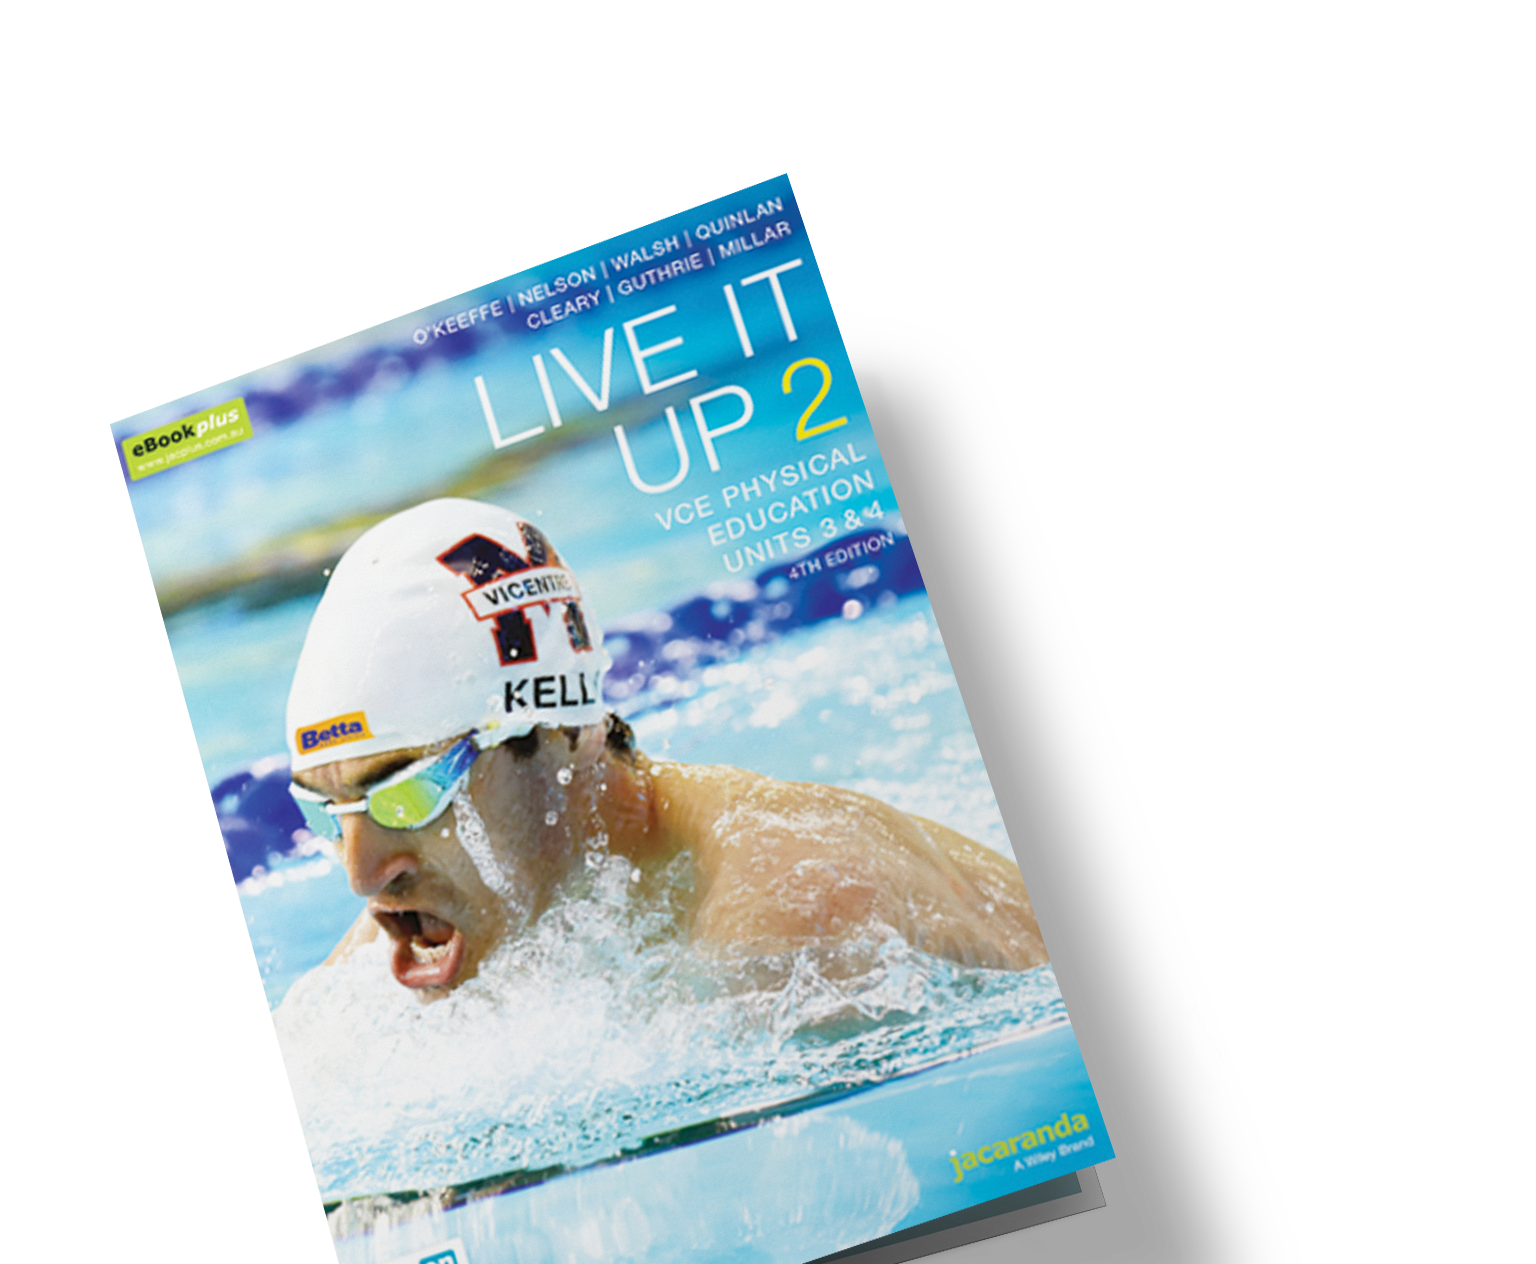 Live it up 2 vce physical education unites 3 and 4 4th edition live it up 2 vce physical education unites 3 and 4 4th edition fandeluxe Choice Image